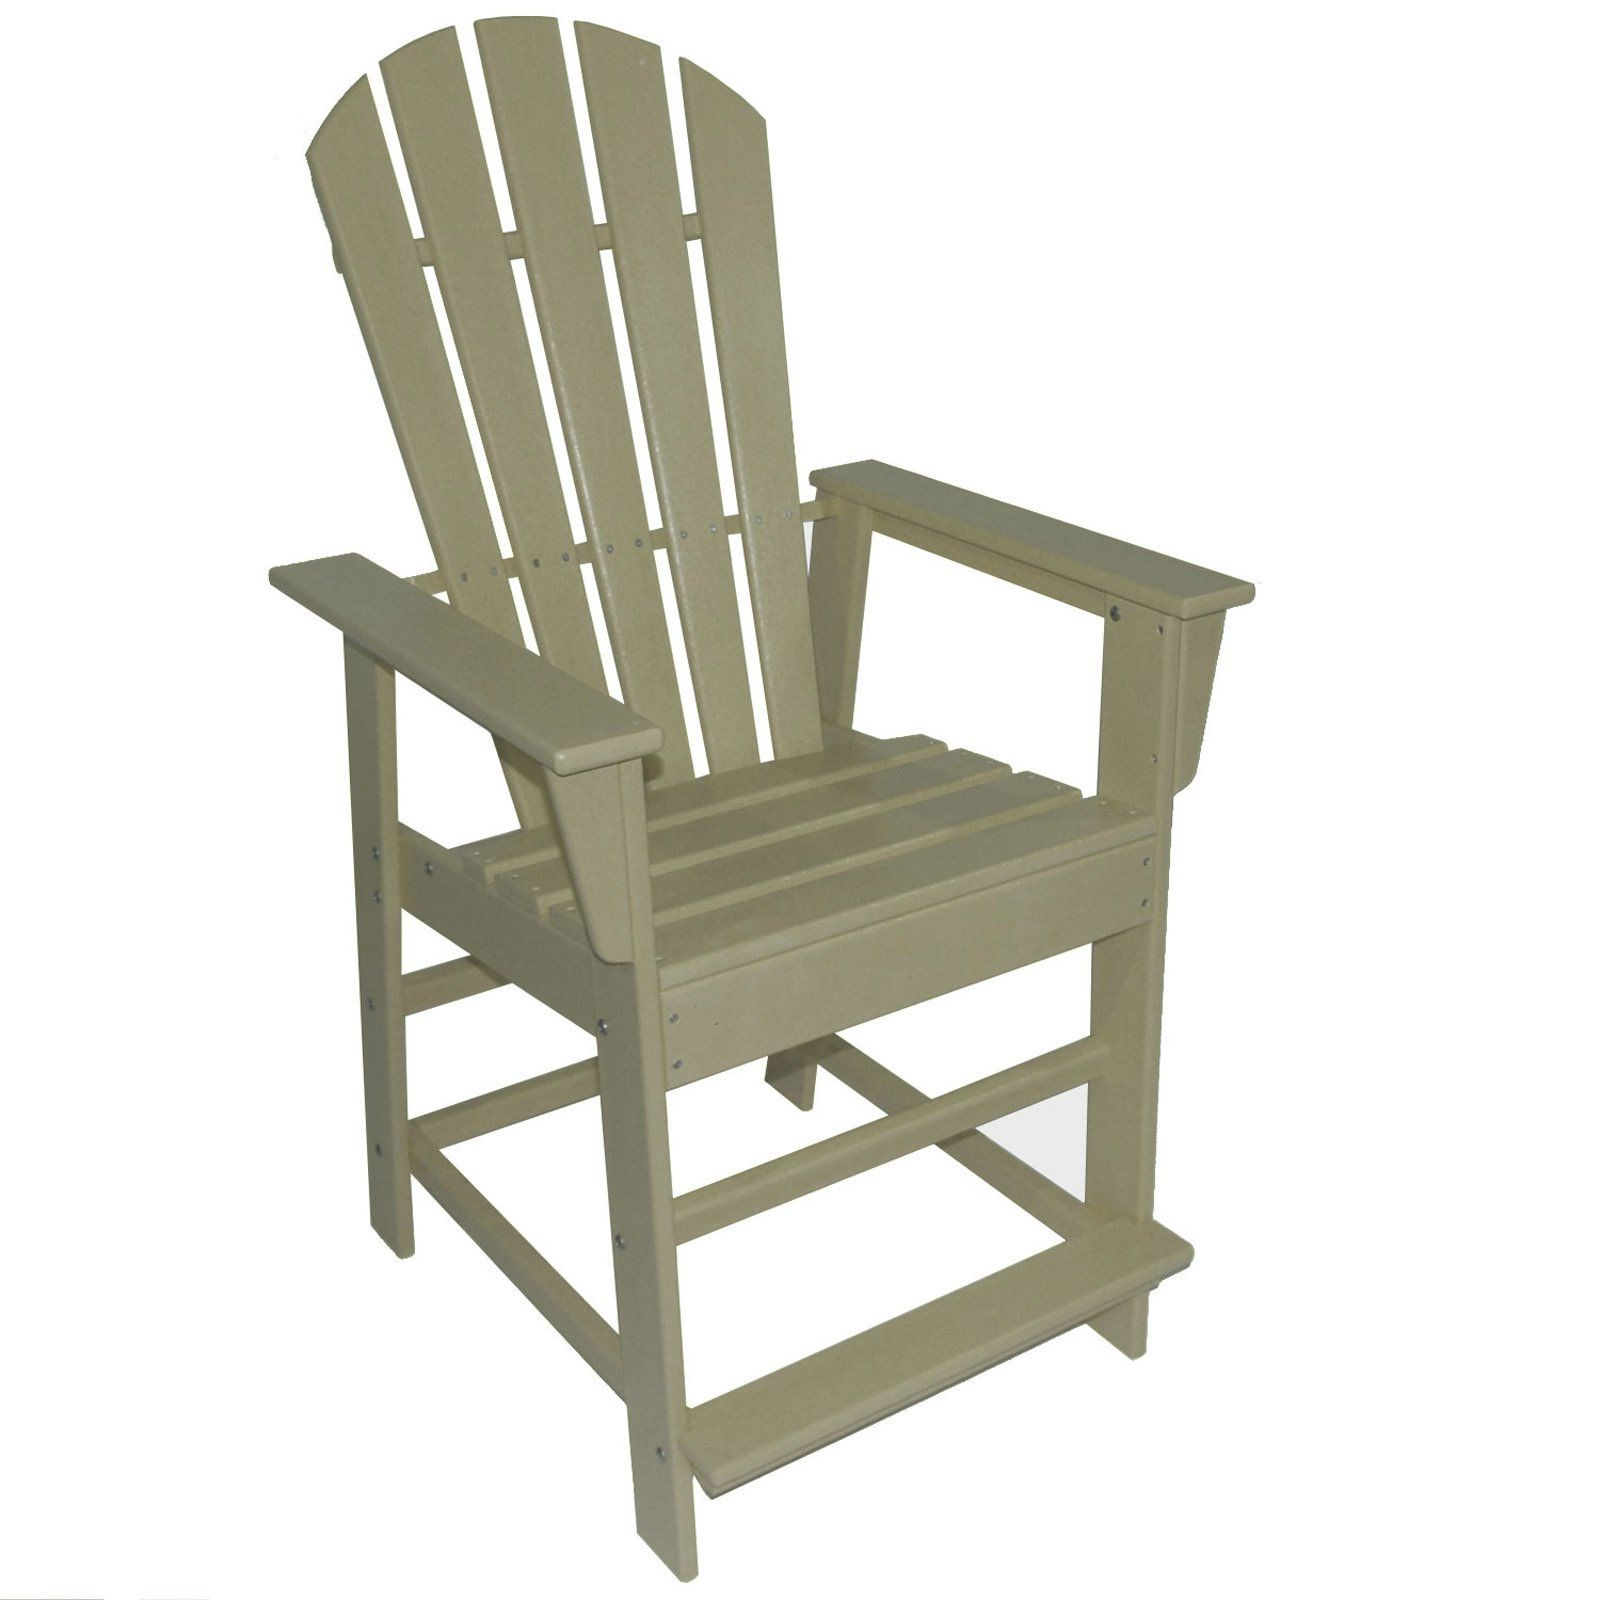 Outdoor POLYWOOD® South Beach Recycled Plastic 24 in